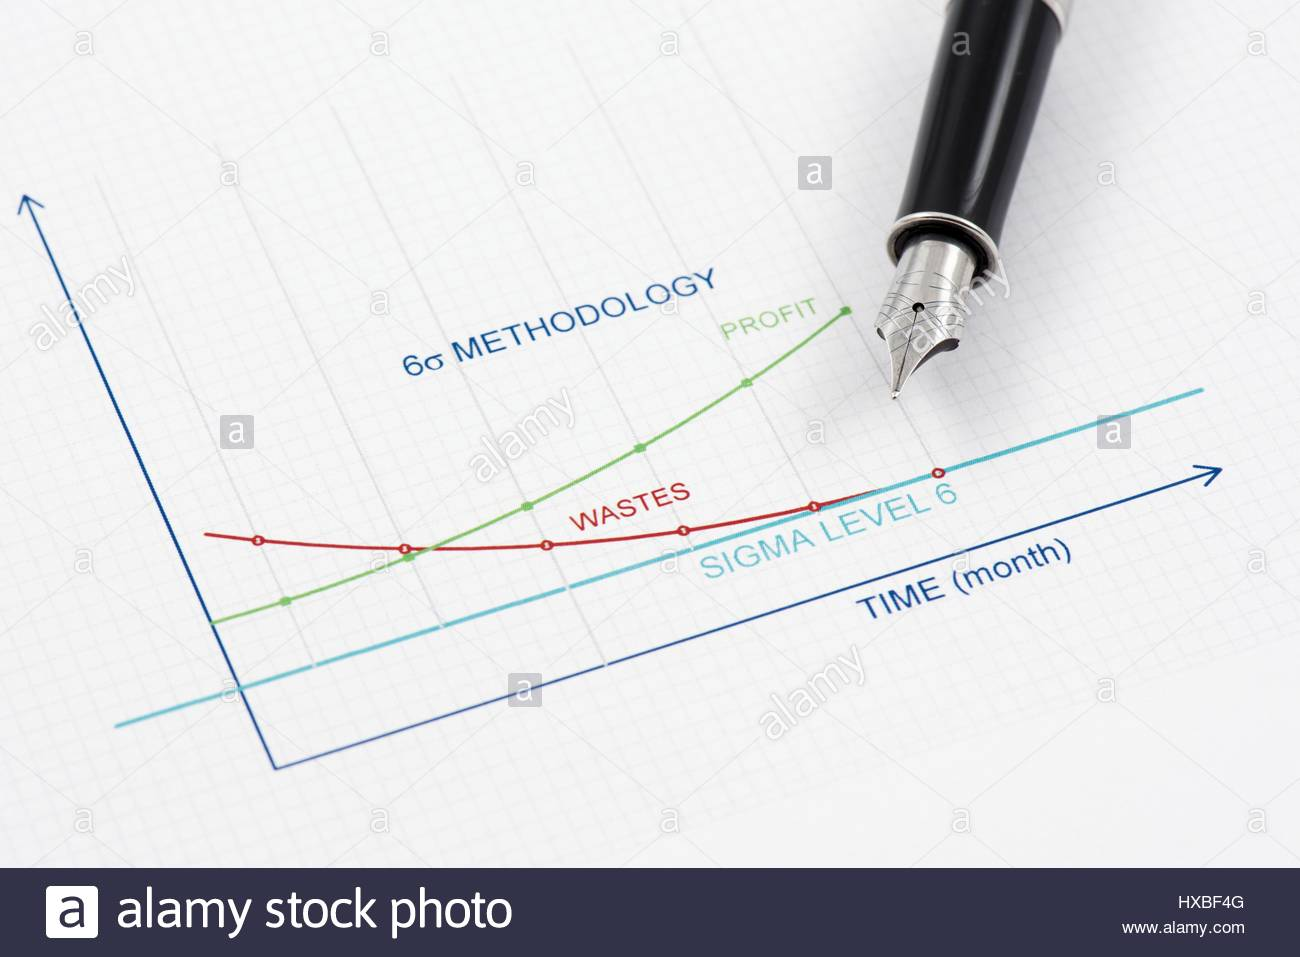 Efficiency of Six Sigma Methodology is shown by graphics. - Stock Image